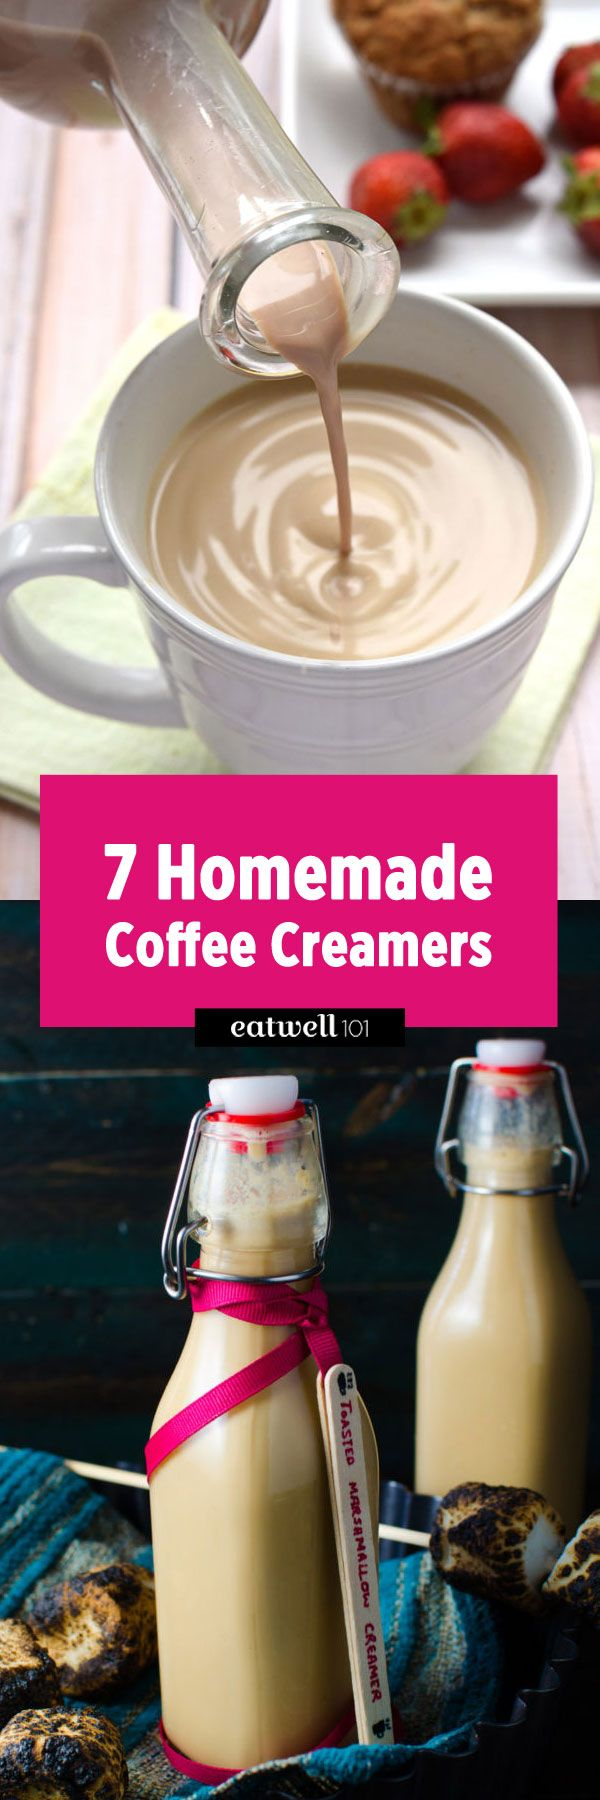 Best 25+ Caffeine and alcohol ideas on Pinterest | Coffee drinks ...